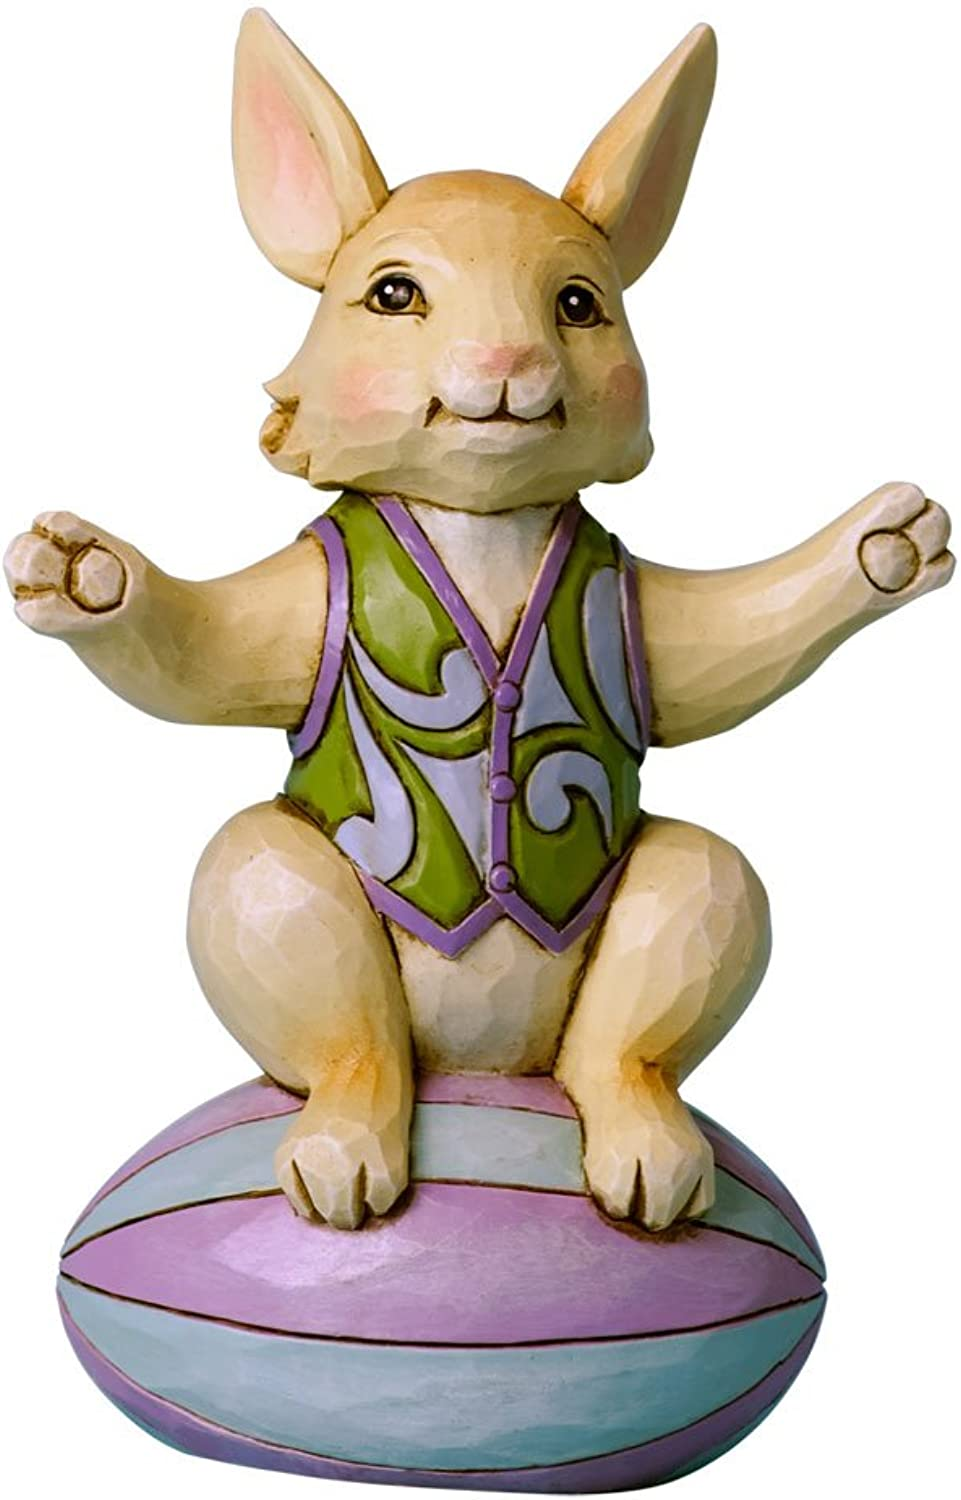 Enesco Jim Shore Heartwood Creek Mini Bunny On Easter Egg Figurine, 4Inch